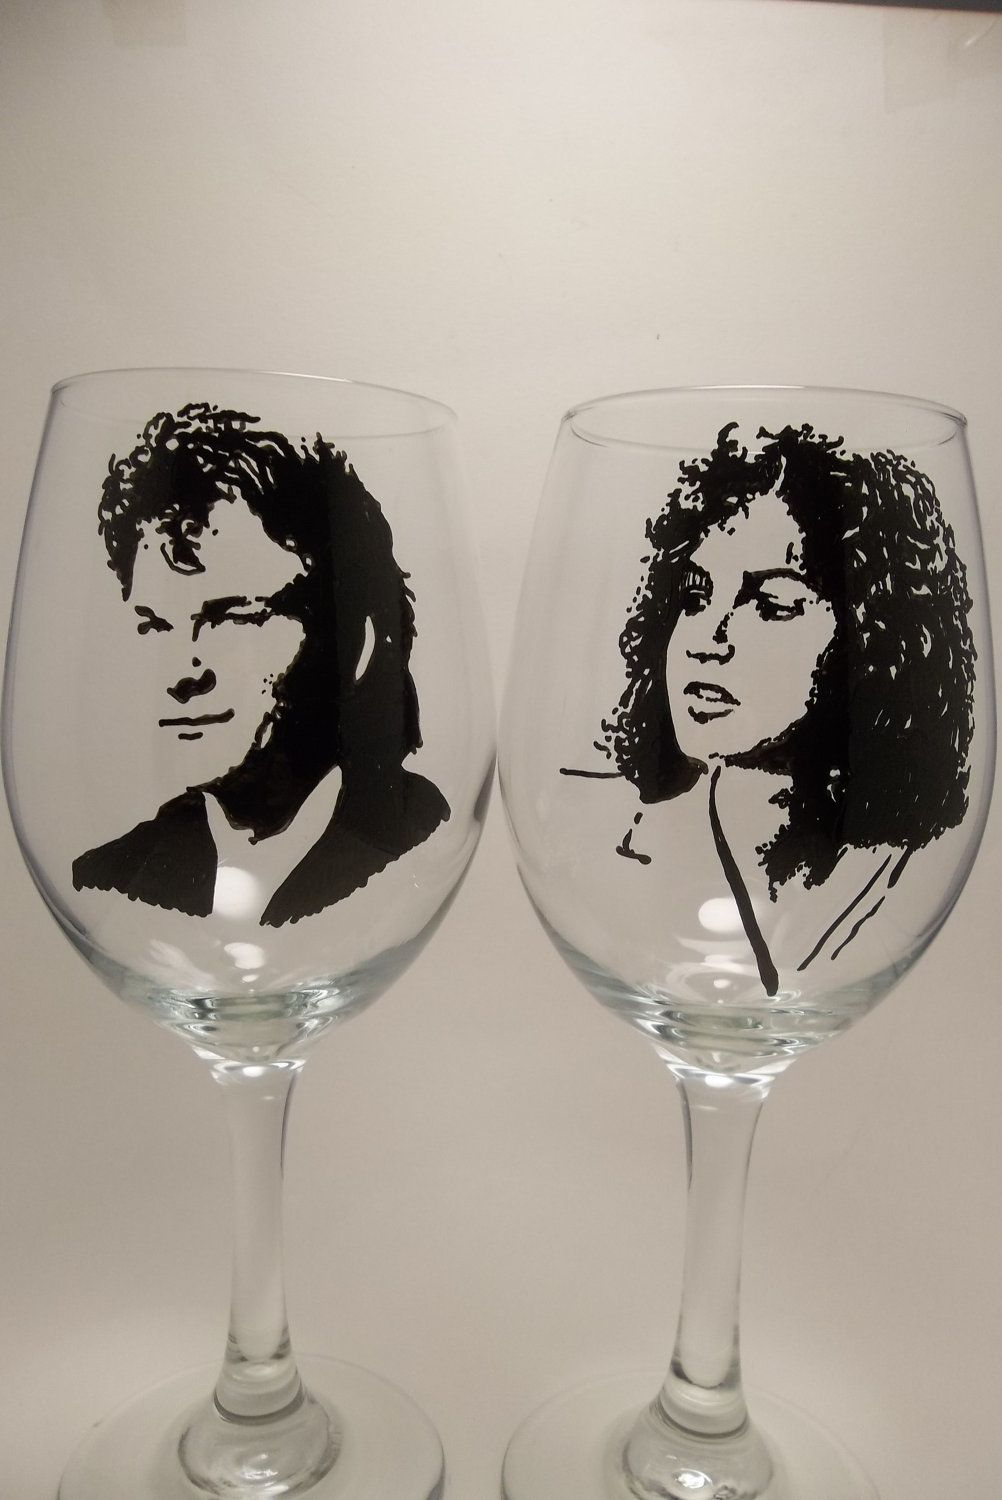 Dirty Dancing Wine Glasses, Patrick Swayze, hand painted wine glasses. $38.00, via etsy. Whaaaaaaaaa